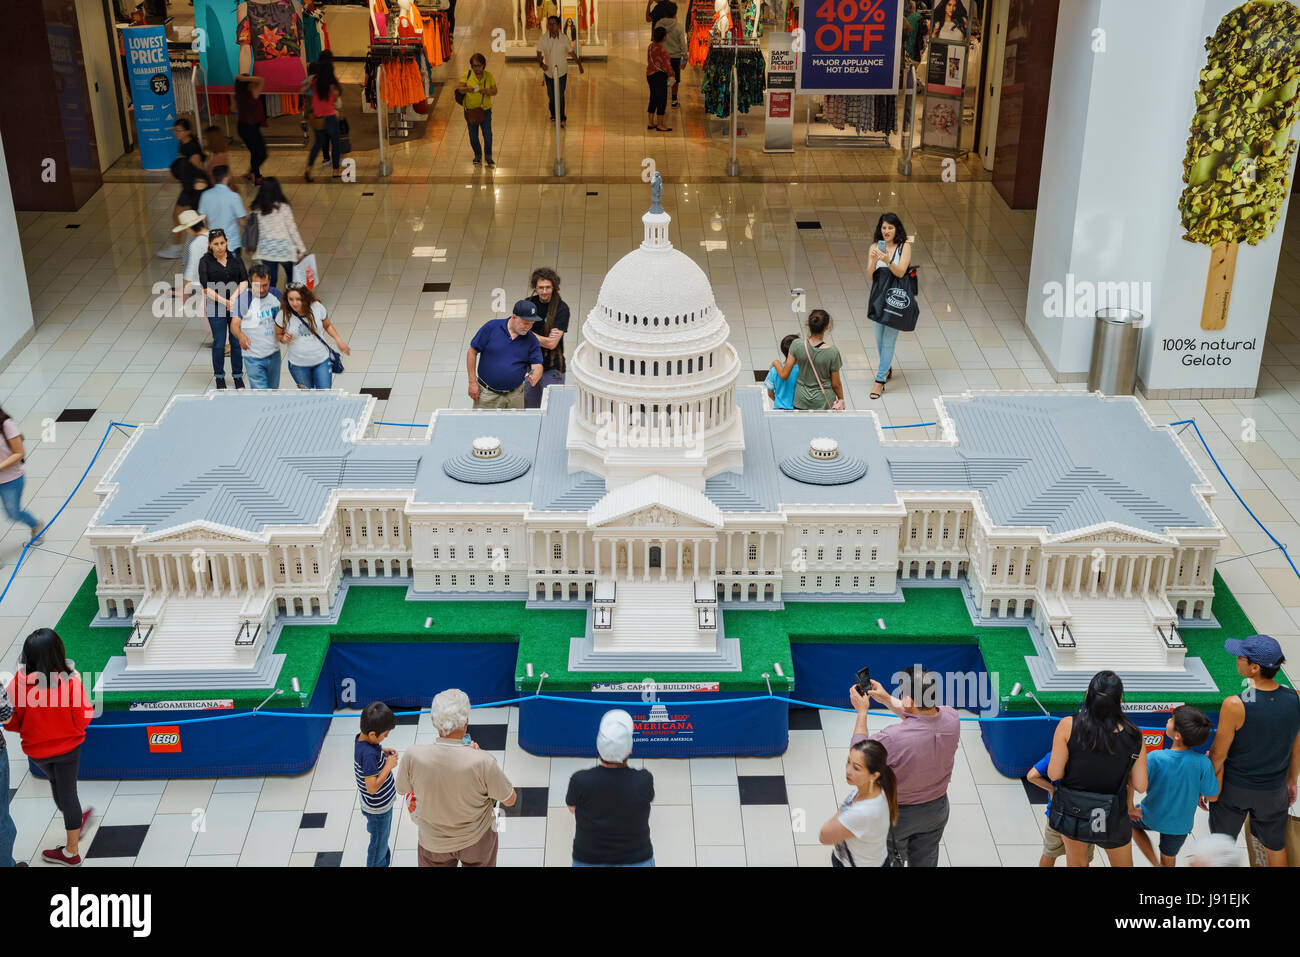 Glendale Galleria, MAY 28: The Lego Americana roadshow (U.S. Capitol Building) on MAY 28, 2017 at Glendale Galleria, - Stock Image